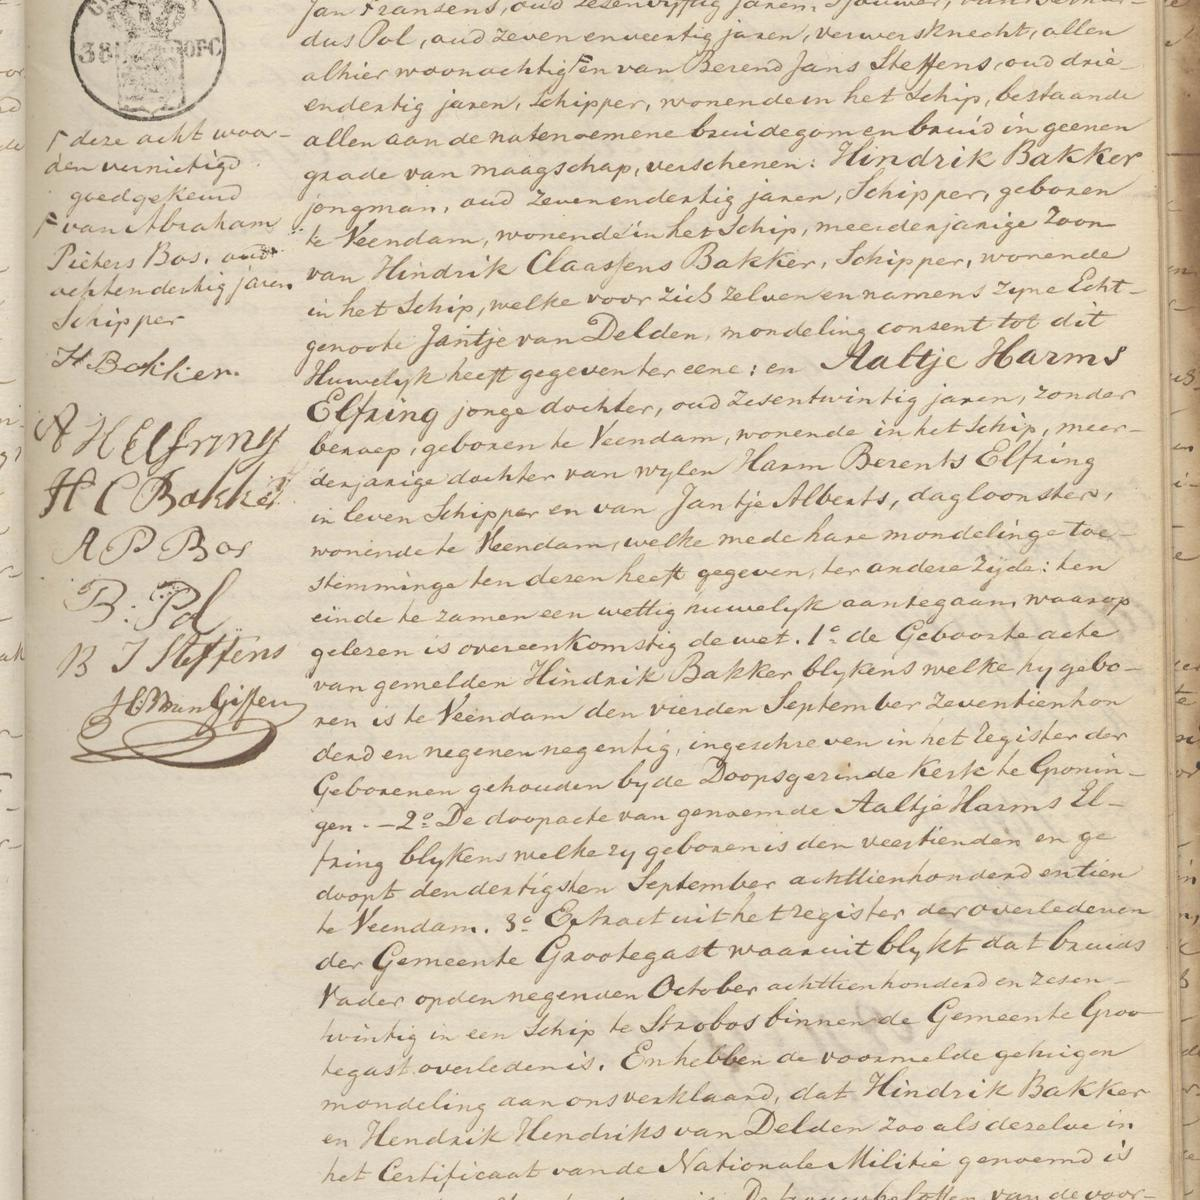 Civil registry of marriages, Groningen, 1836, record 232, page 1